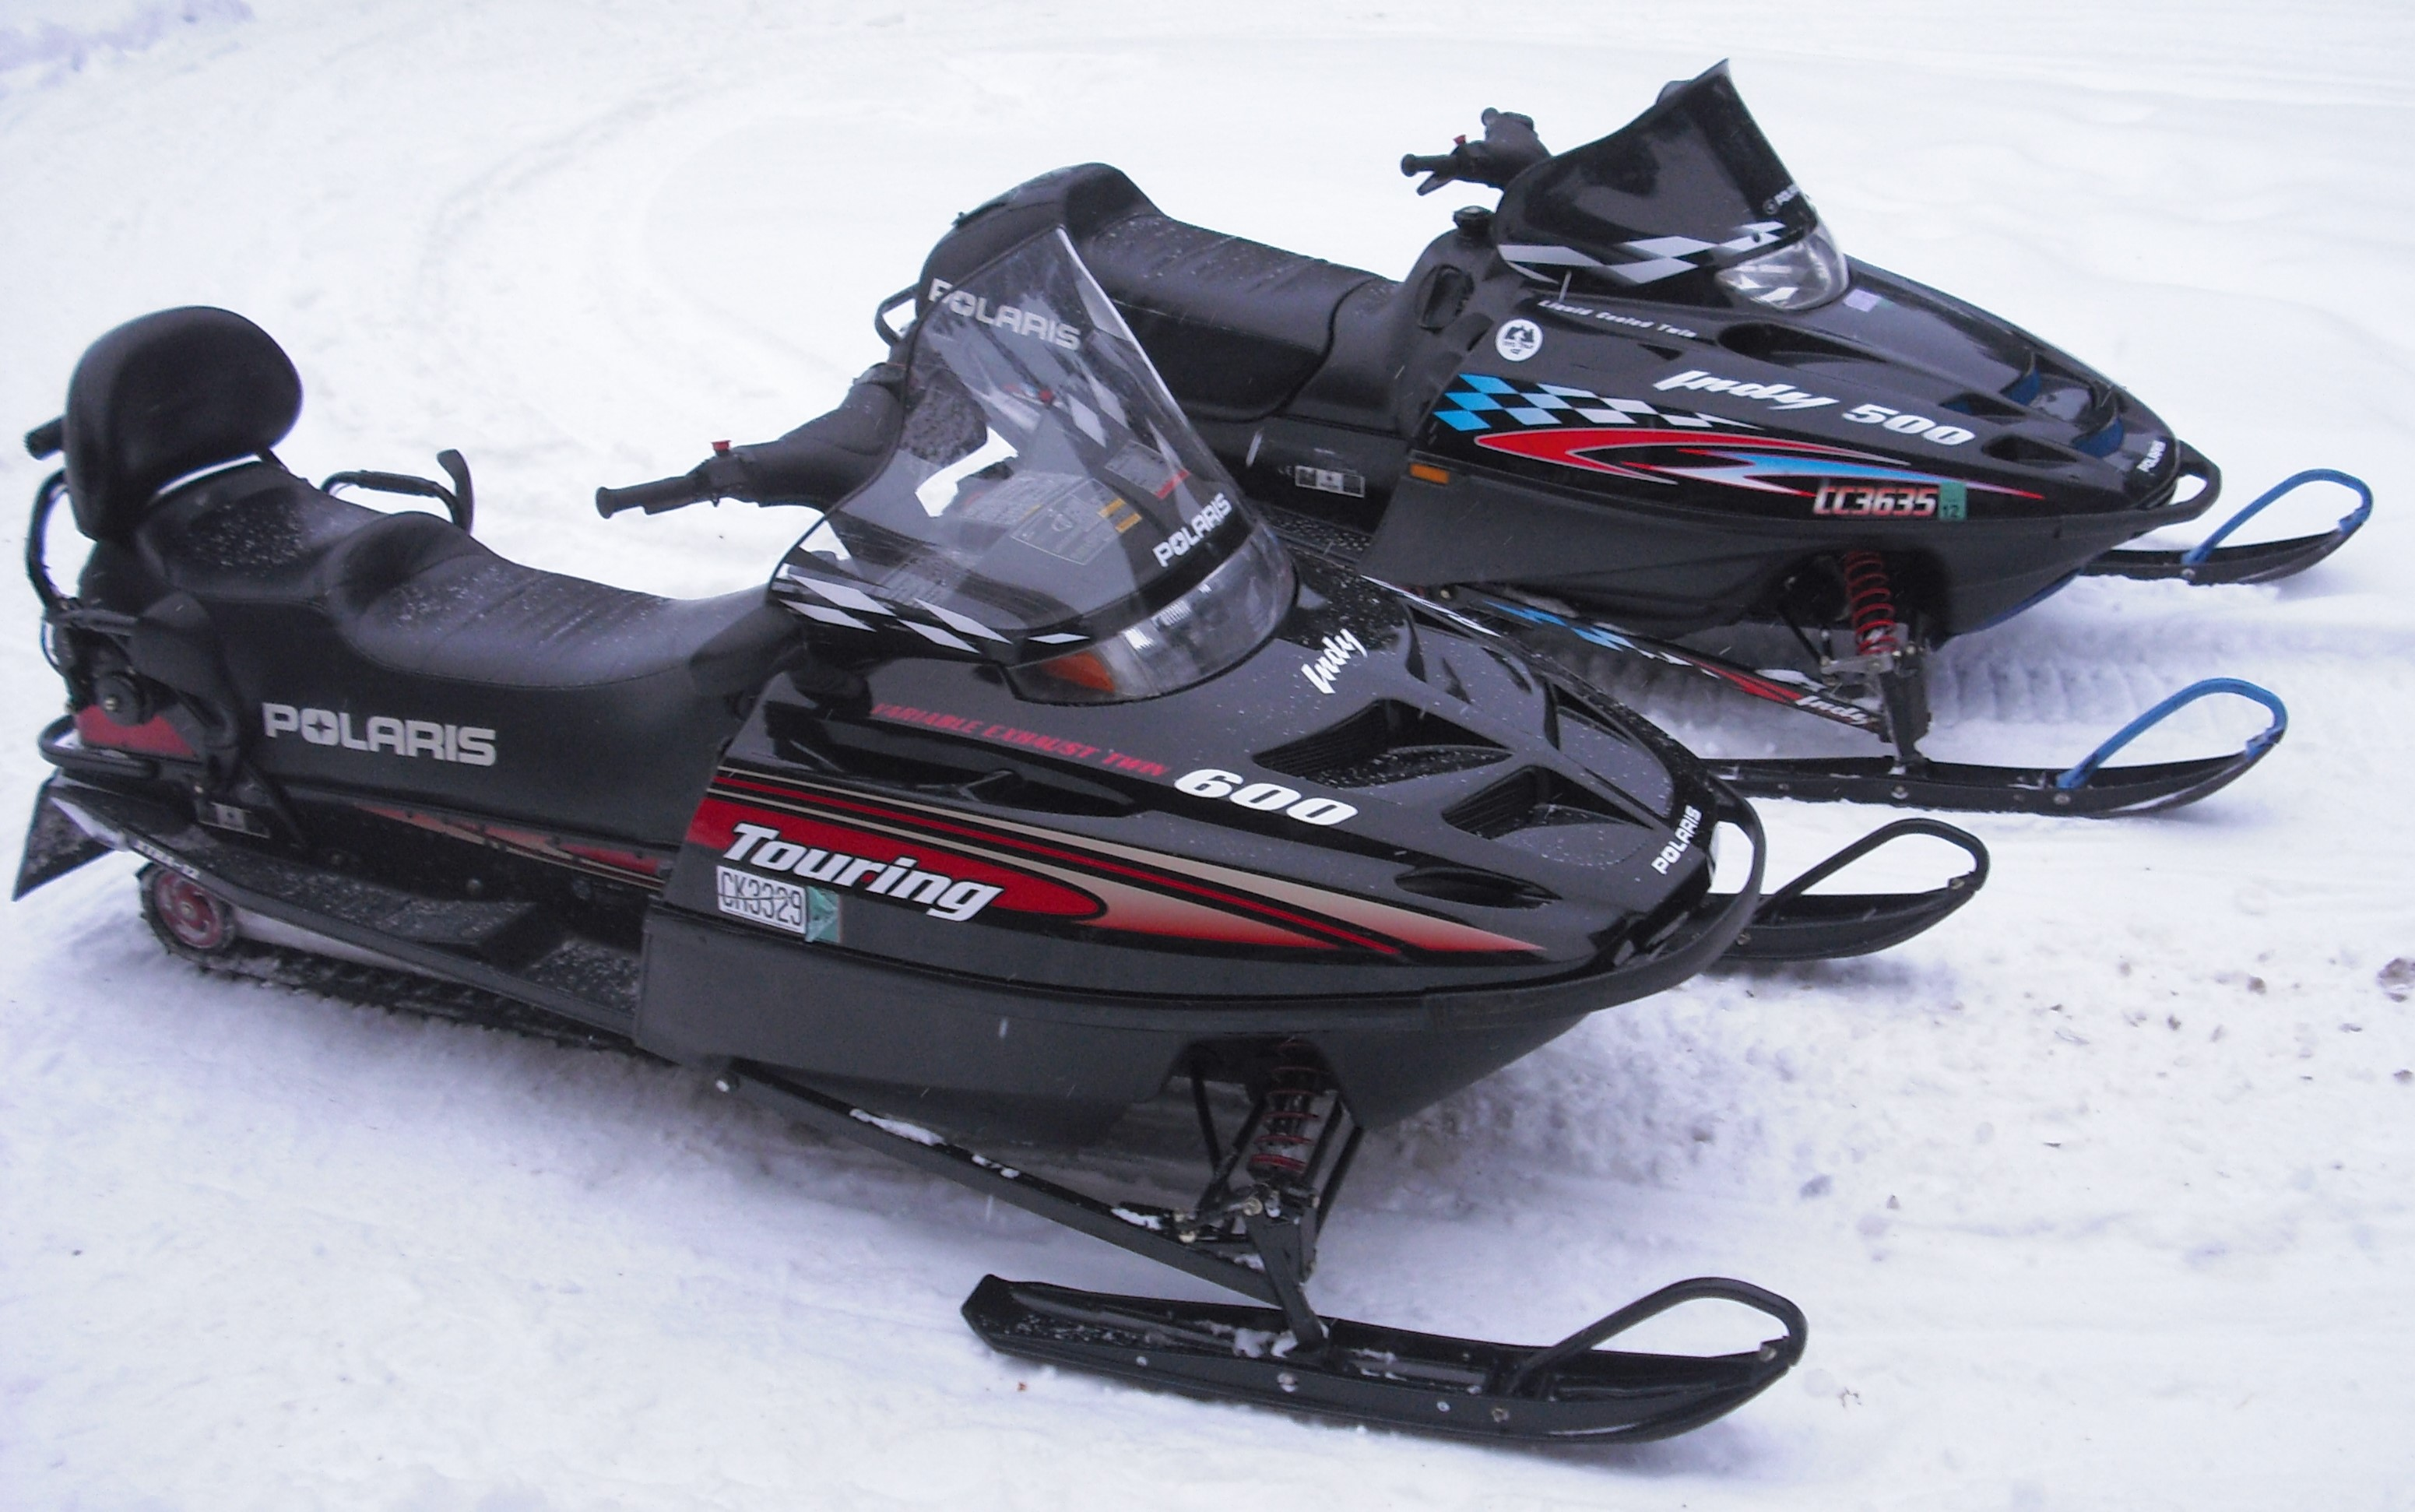 Used Yamaha Snowmobiles For Sale In Mn